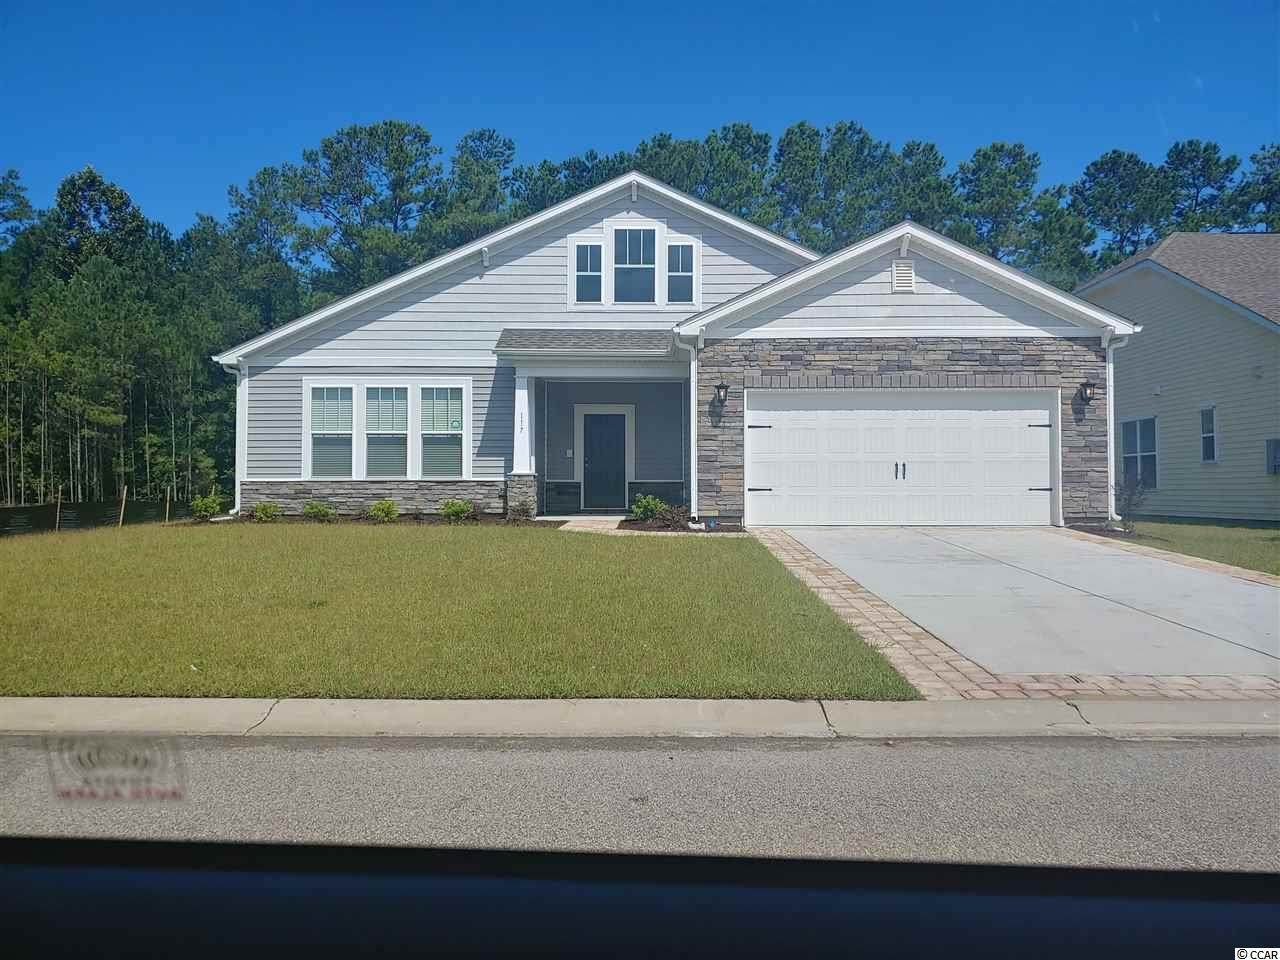 259 Copper Leaf Dr. - Photo 1